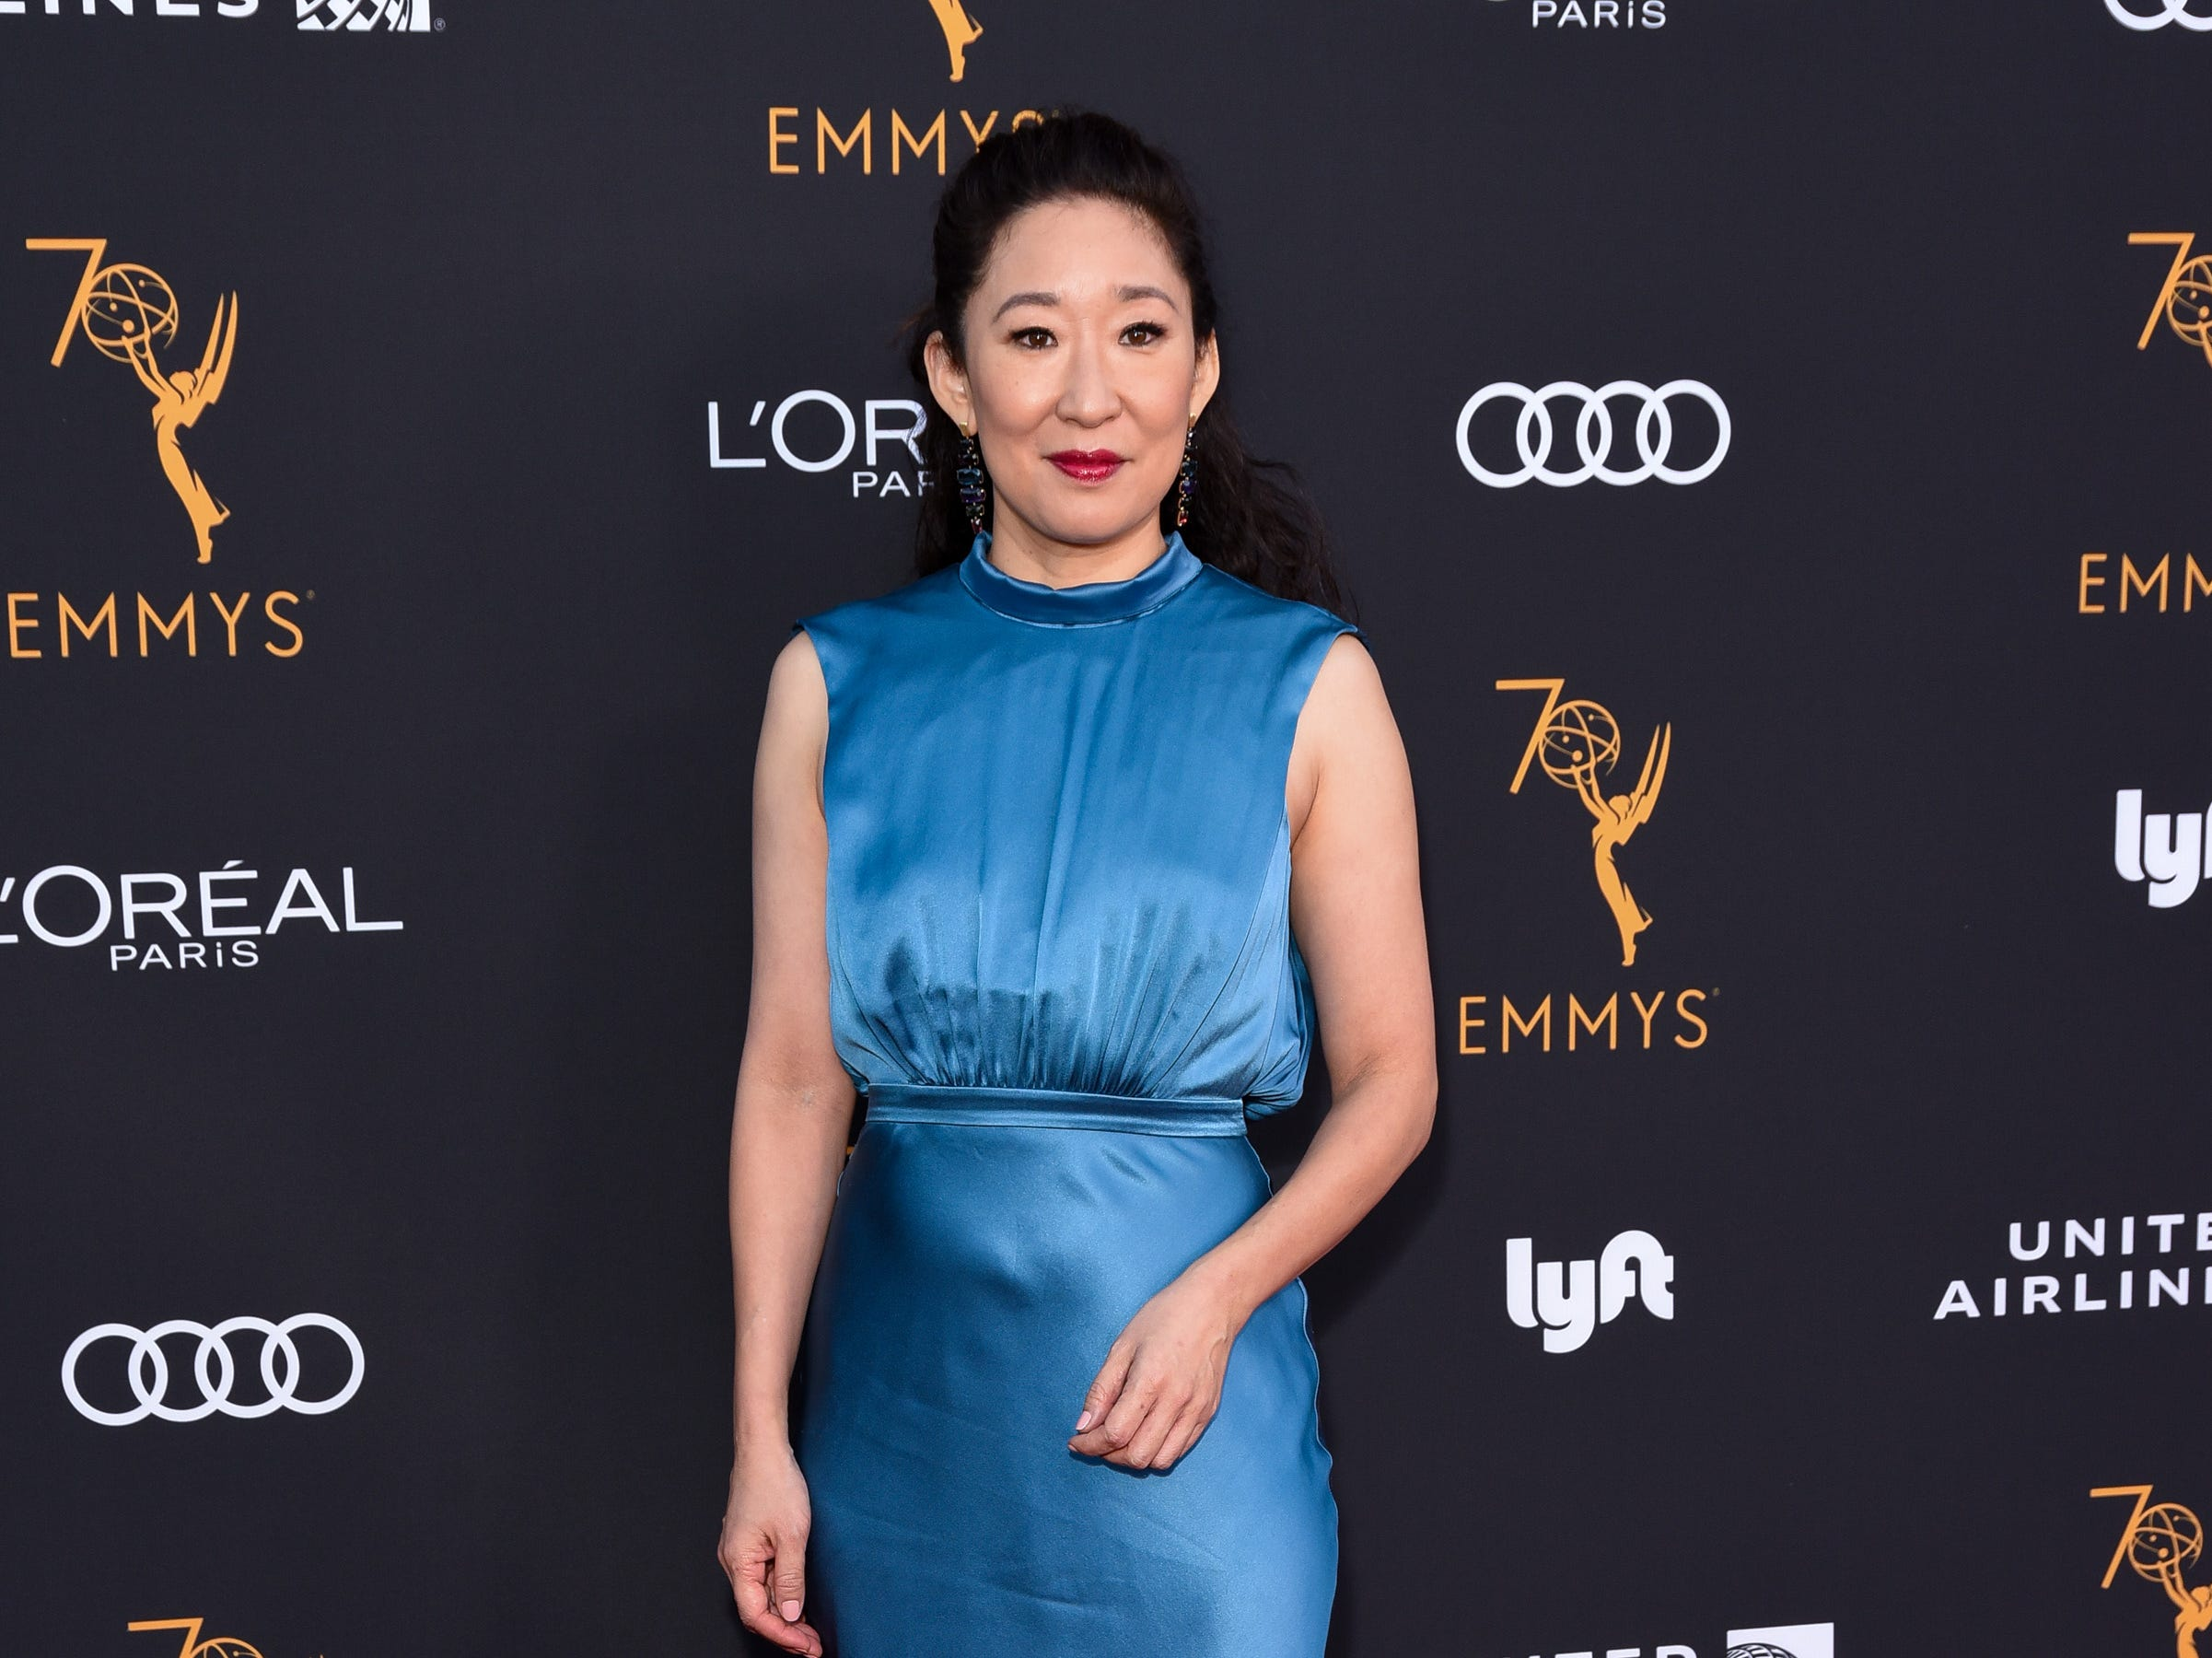 BEVERLY HILLS, CA - SEPTEMBER 15:  Sandra Oh attends Television Academy Honors Emmy Nominated Performers - Arrivals at Wallis Annenberg Center for the Performing Arts on September 15, 2018 in Beverly Hills, California.  (Photo by Presley Ann/Getty Images) ORG XMIT: 775226214 ORIG FILE ID: 1034003992